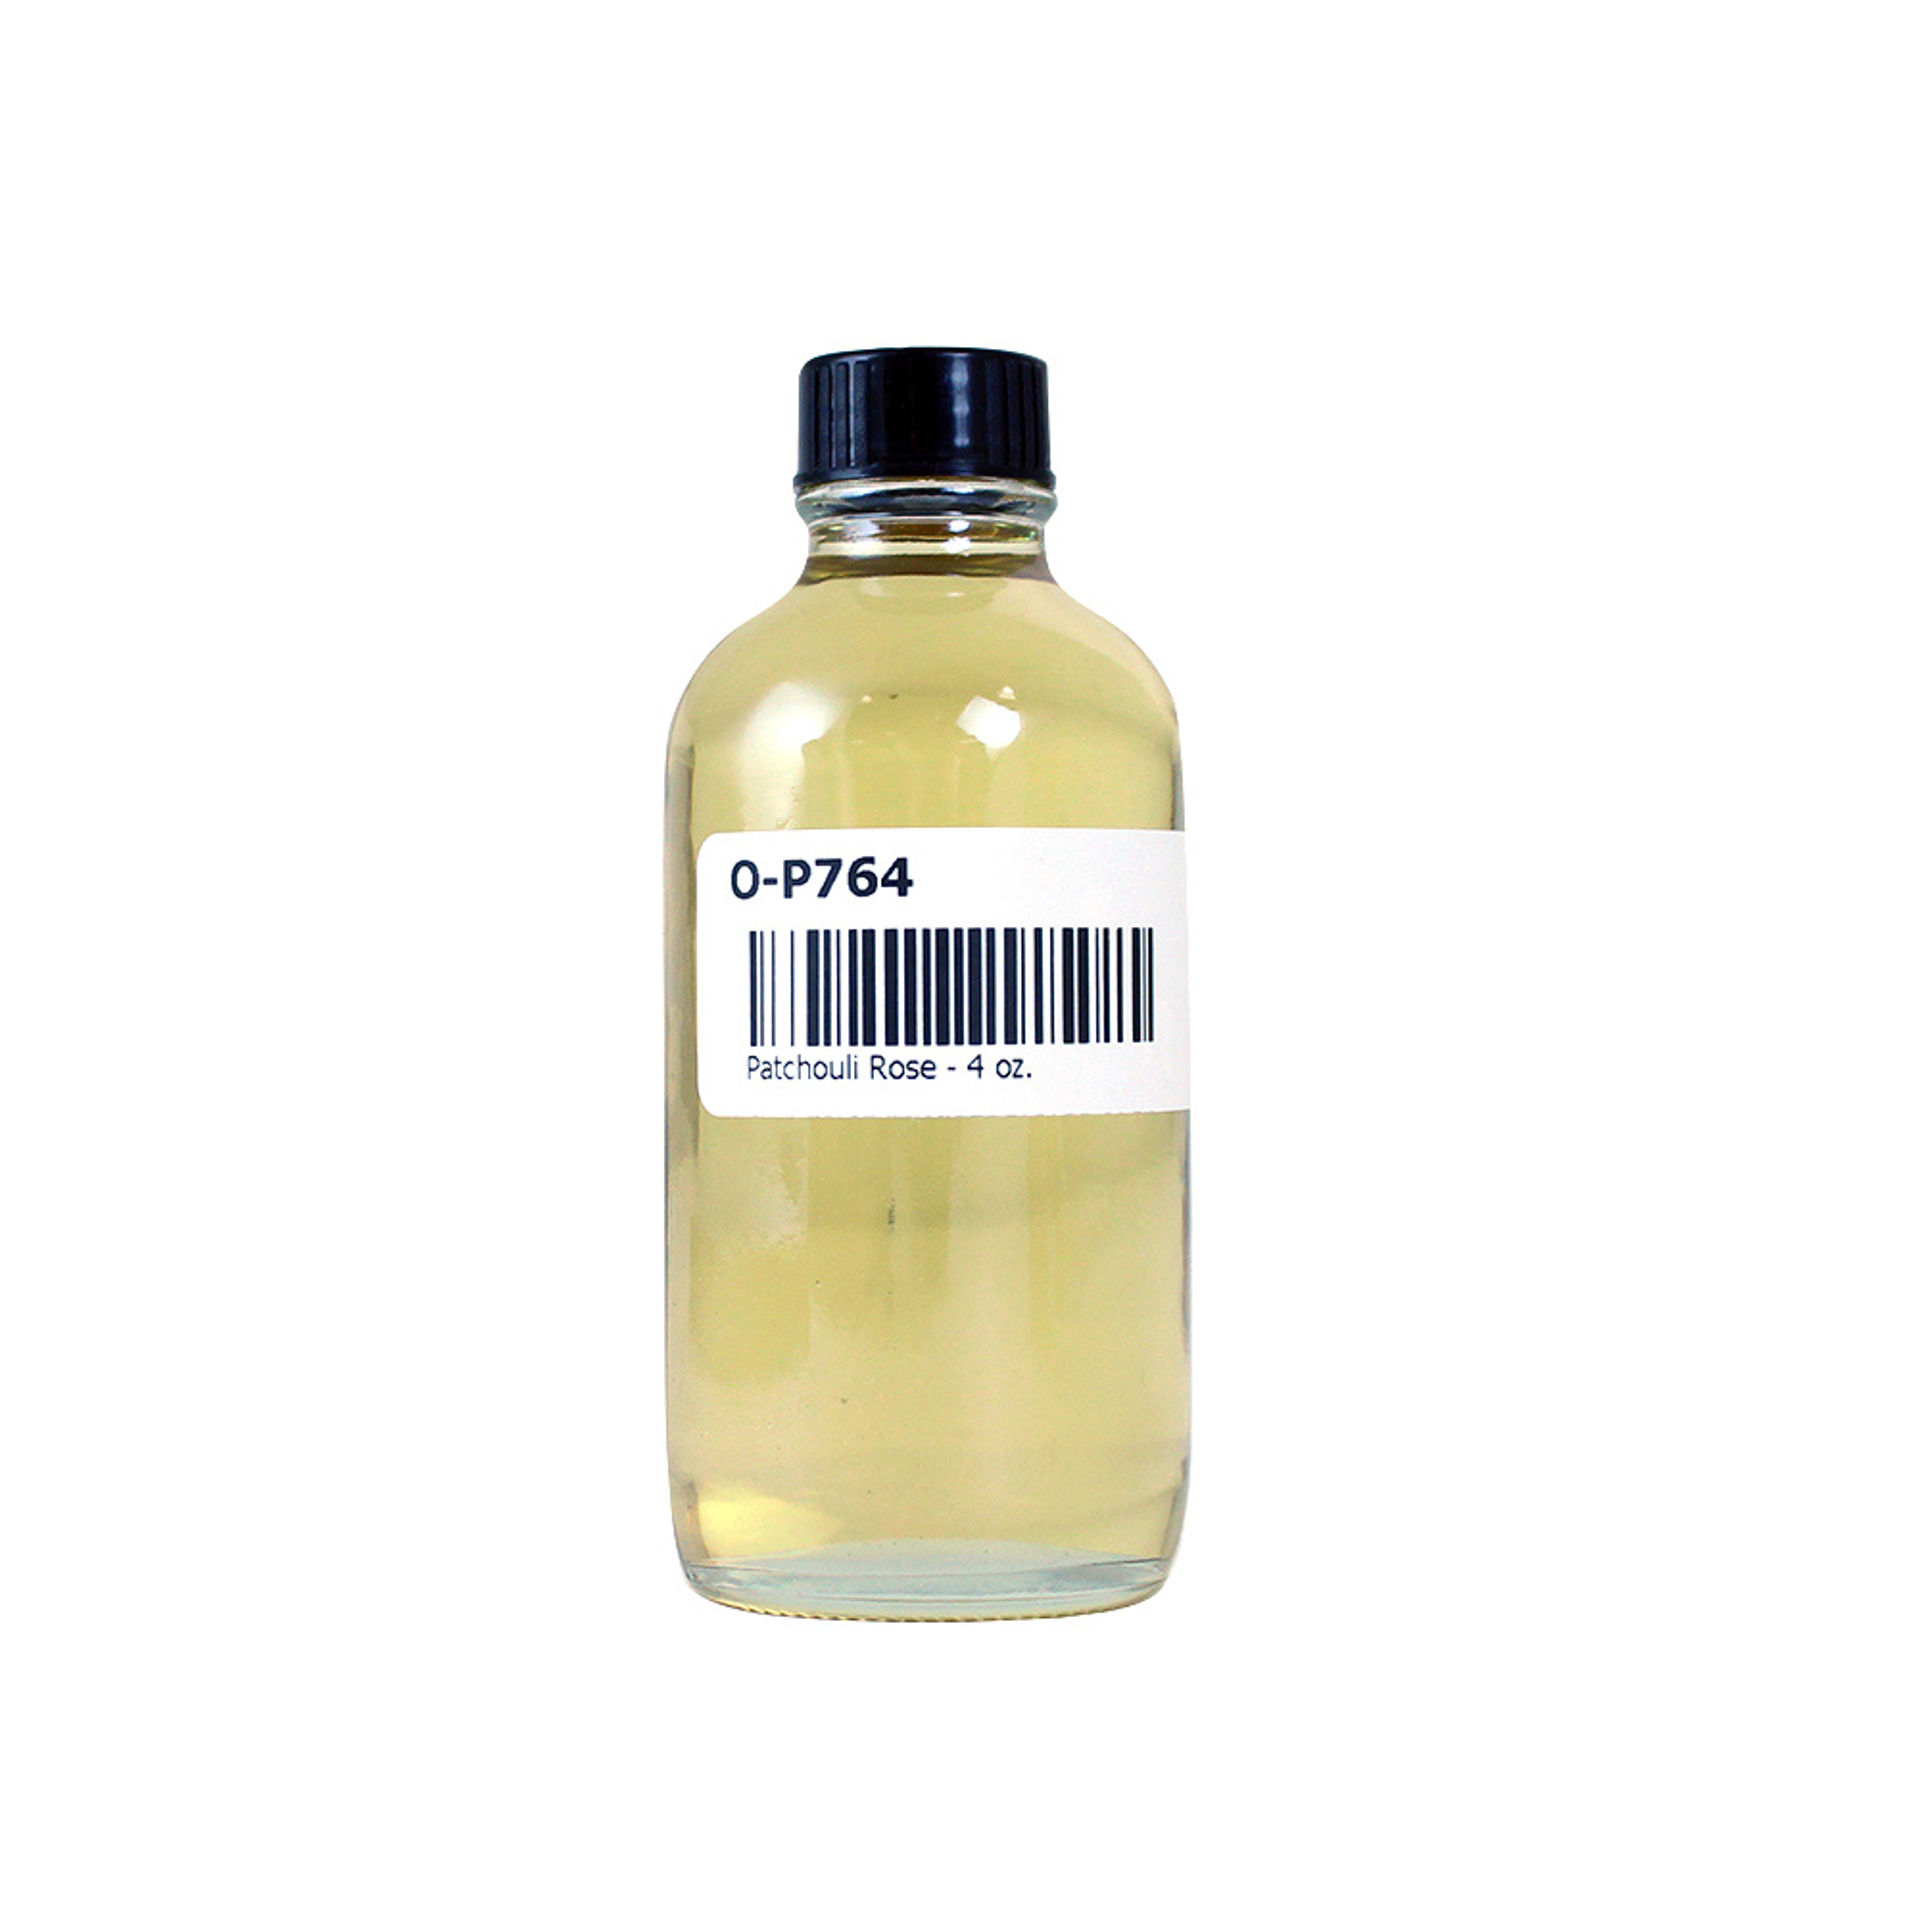 Picture of Patchouli Rose - 4 oz.